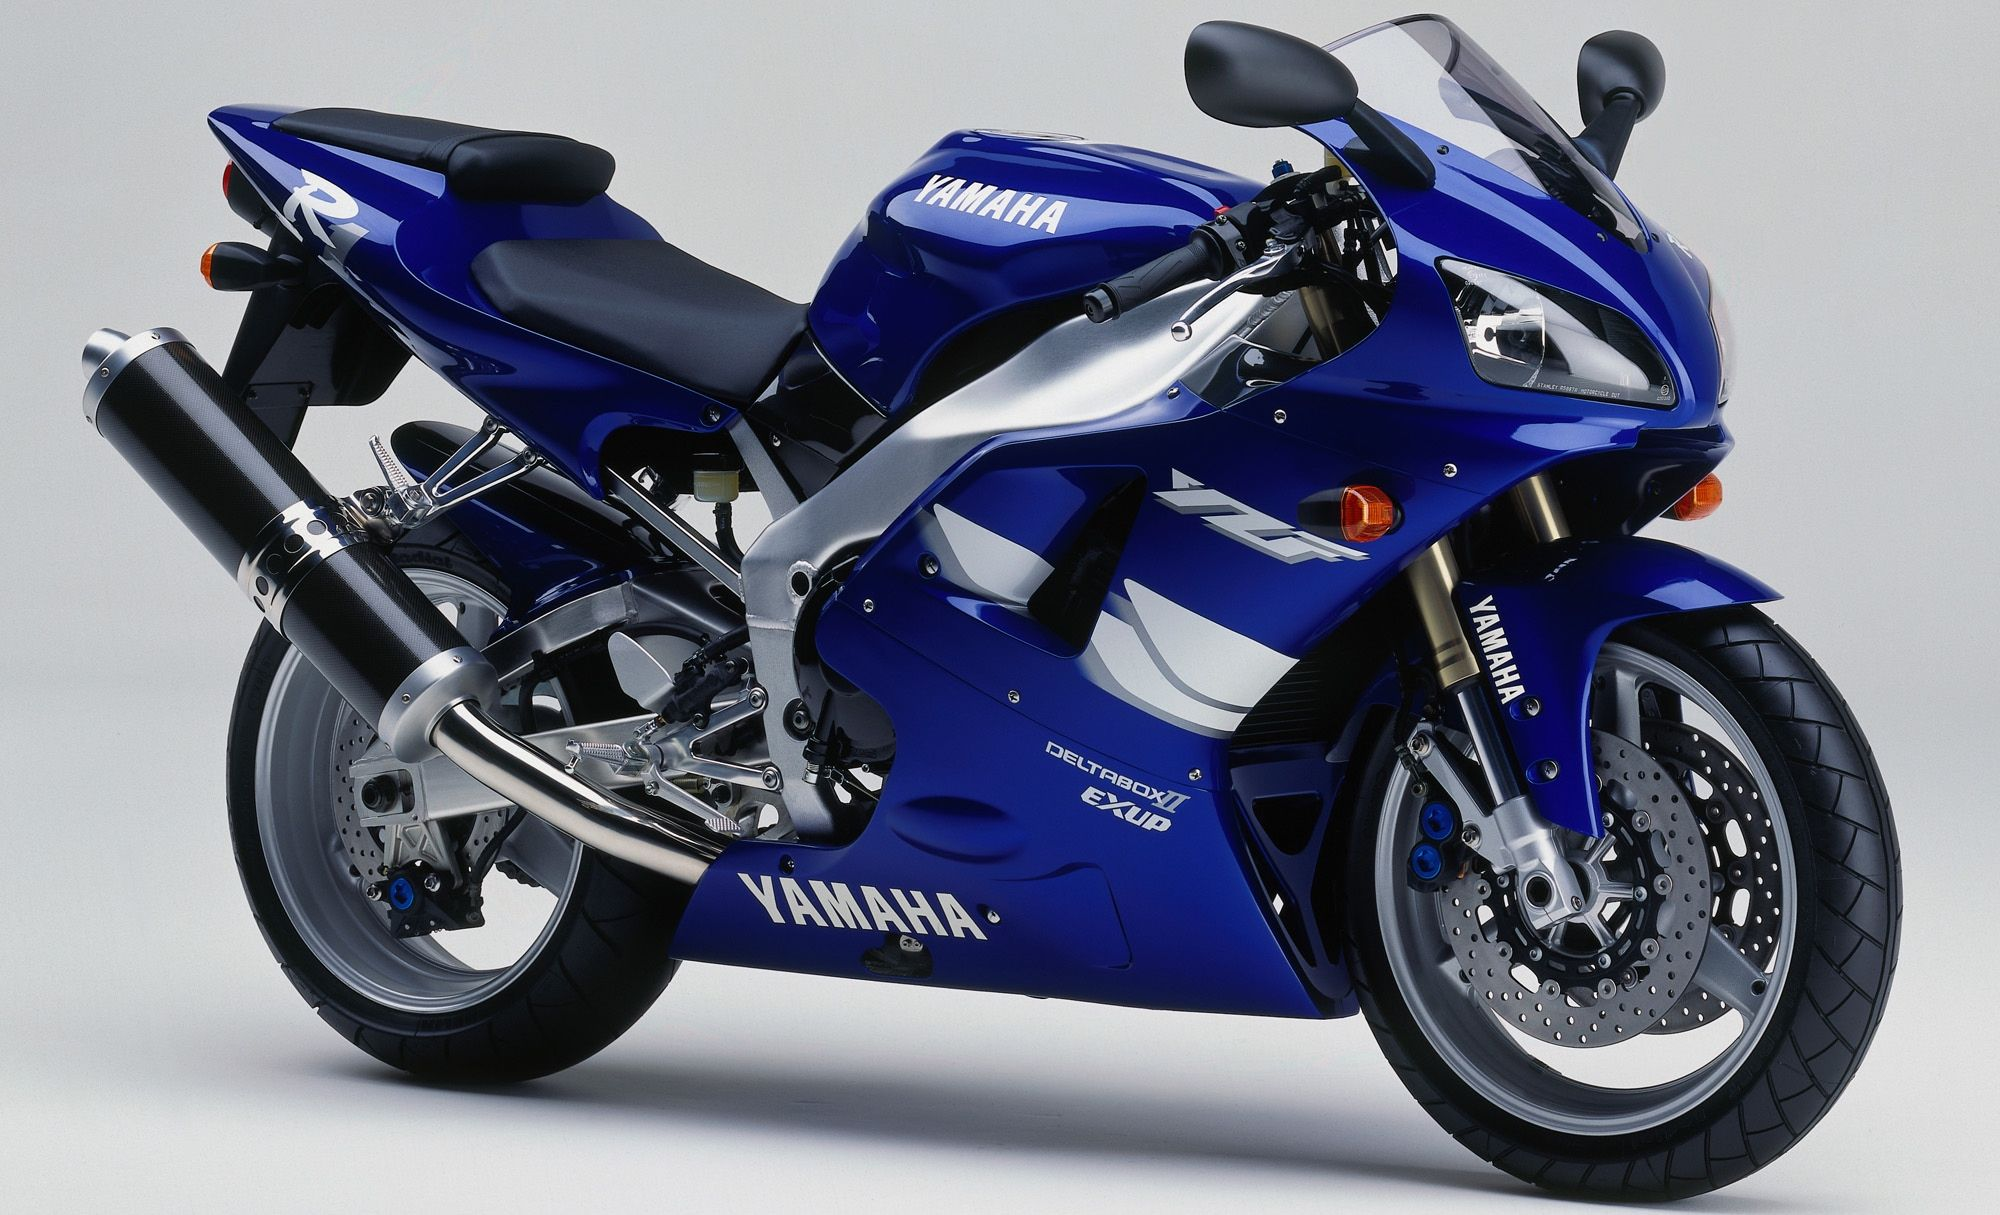 yamaha r1 blue bike - photo #26